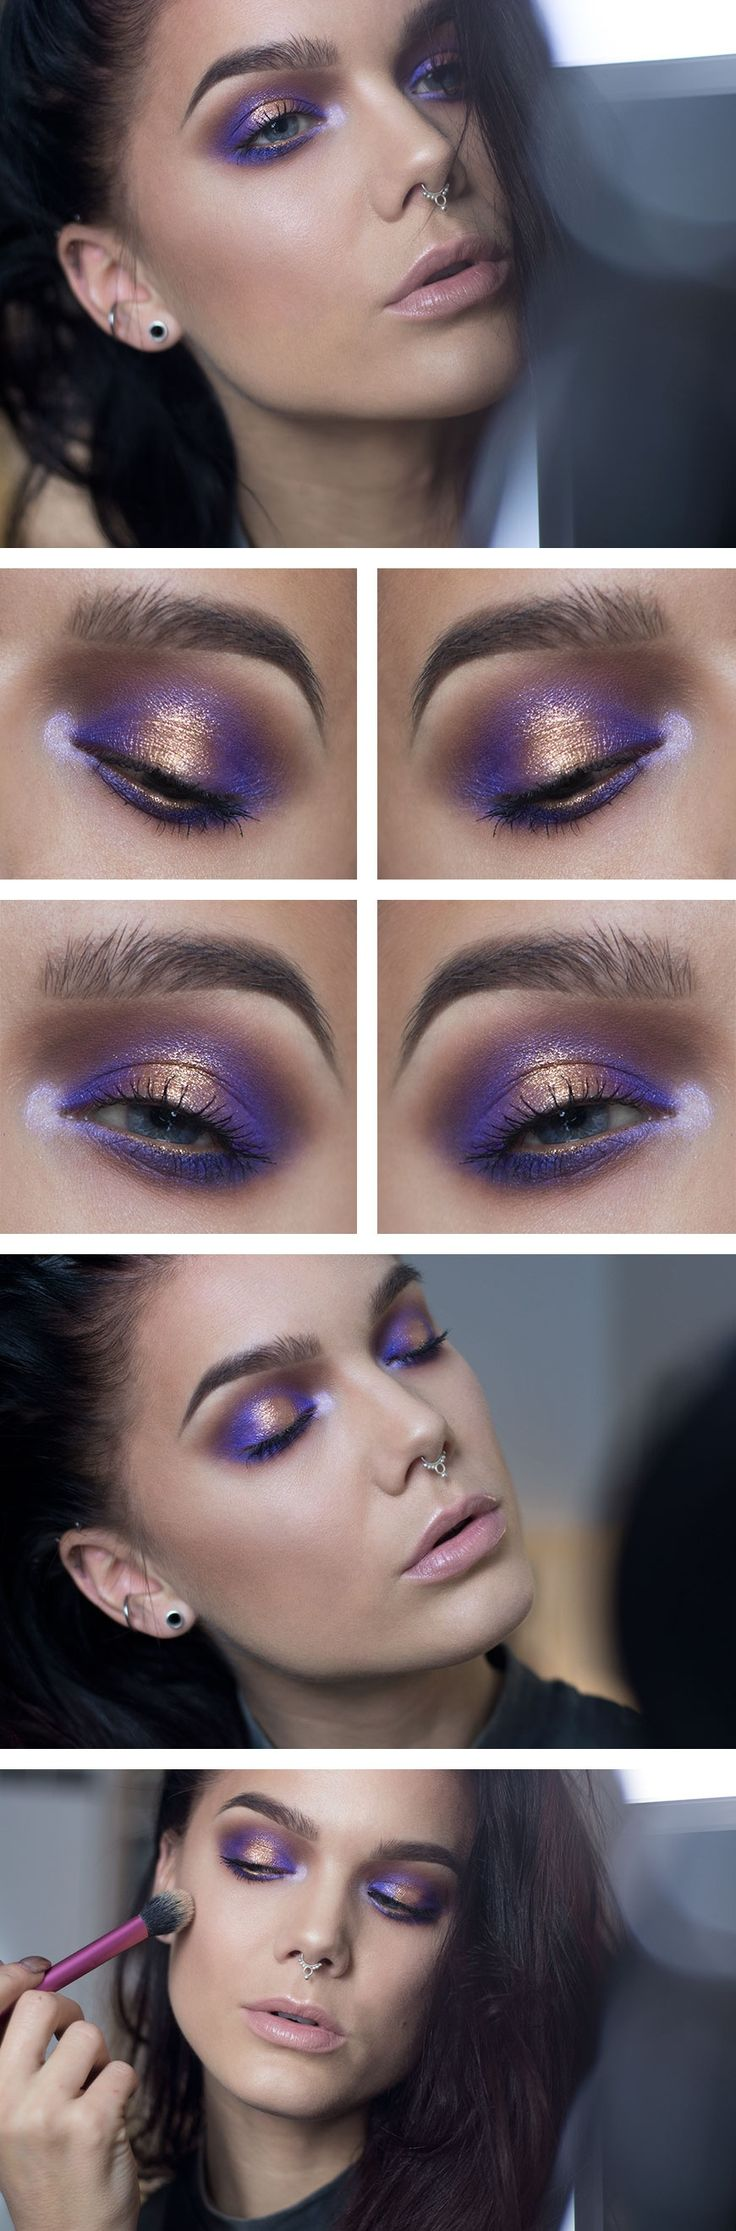 Todays look – High shine purple & gold